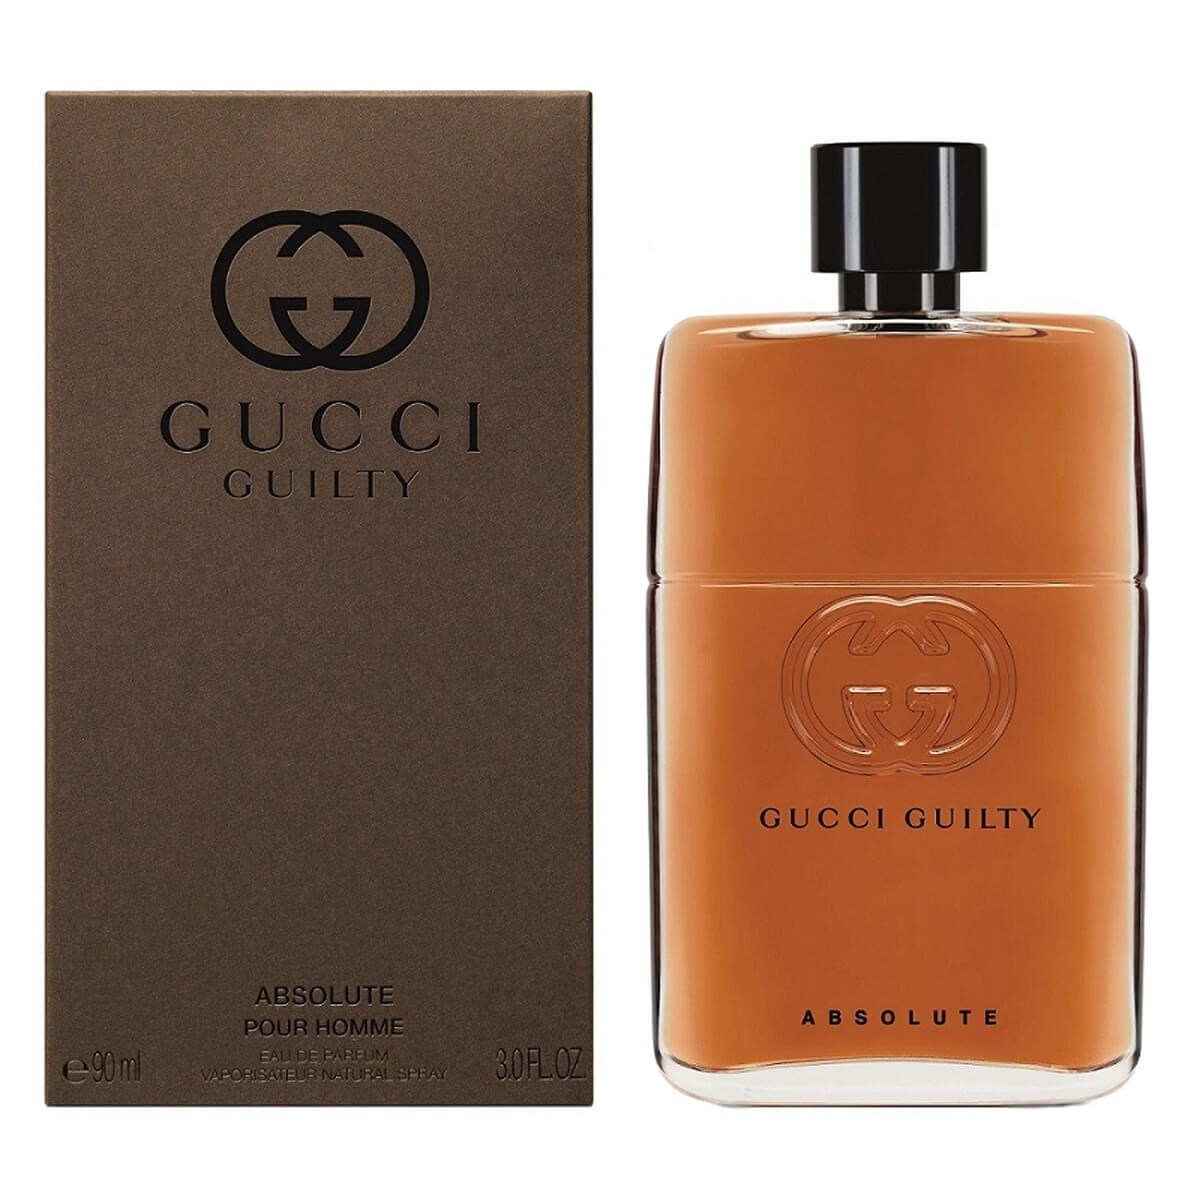 Gucci Guilty Absolute Pour Homme EDP For Him